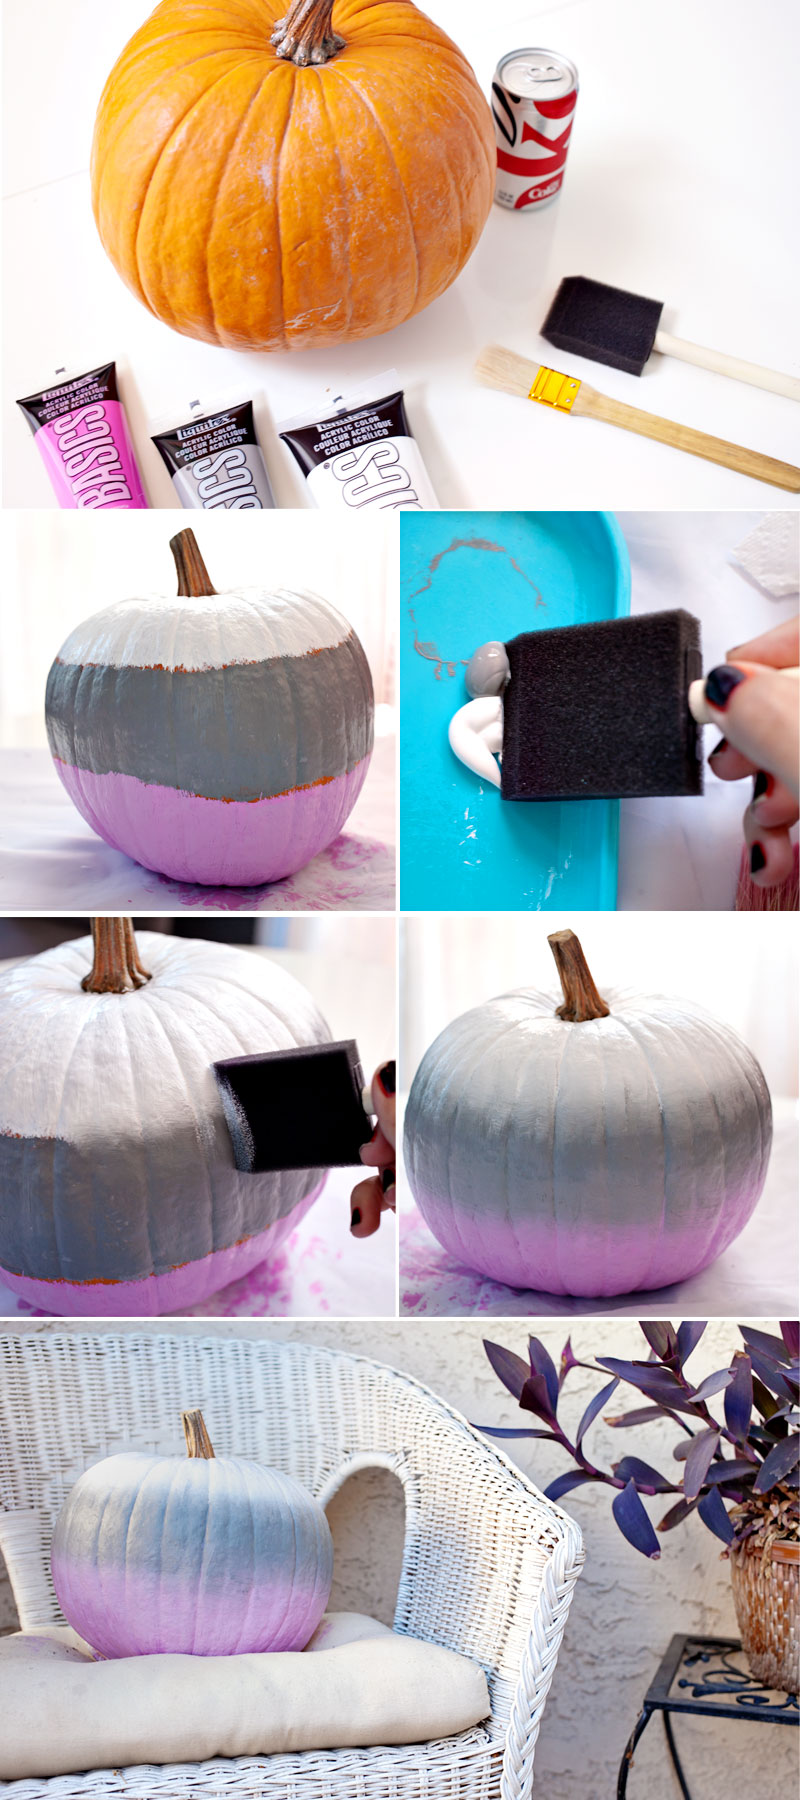 10 Stylish No Carve Pumpkin Decorating Ideas- A fun and easy way to decorate your home for fall on a budget, is with these 10 stylish no carve pumpkin decorating ideas!   #fallDecorating #fallPumpkins #craft #DIY #ACultivatedNest